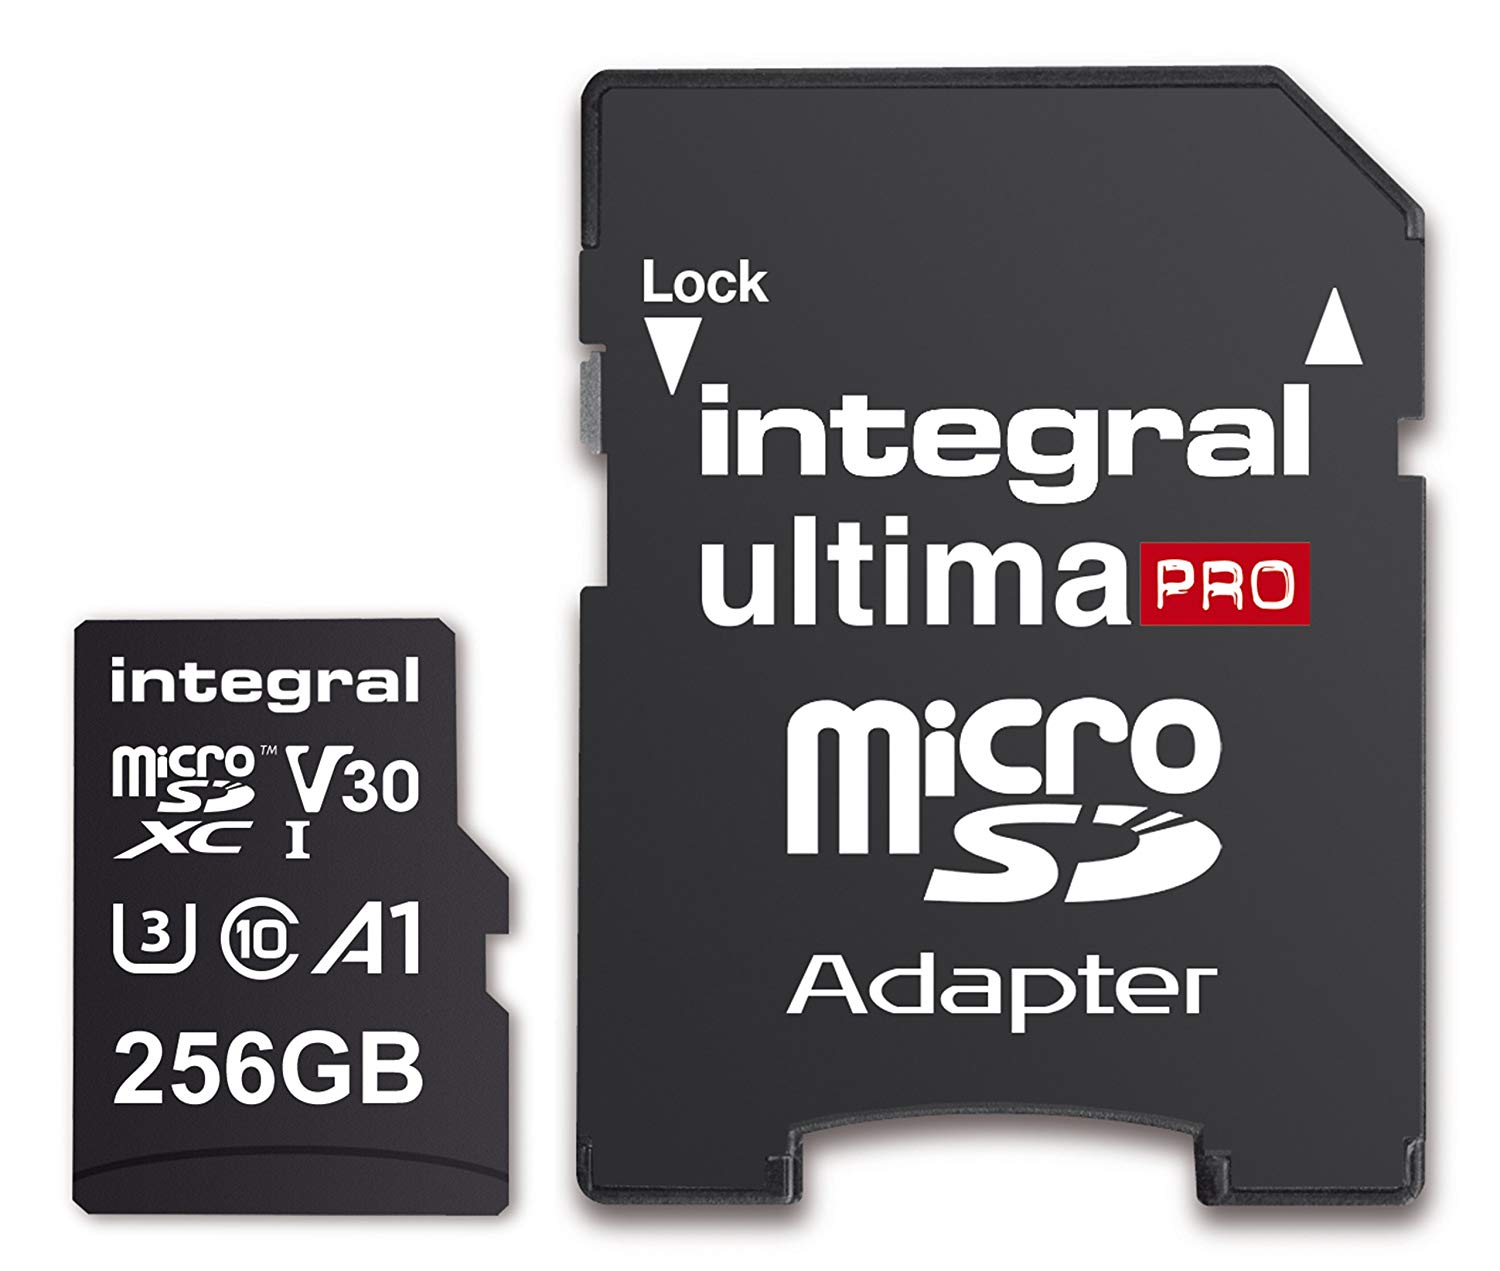 Integral 256GB Premium High Speed Micro SD (microSDXC) Up to 100MB/s V30 UHS-I U3